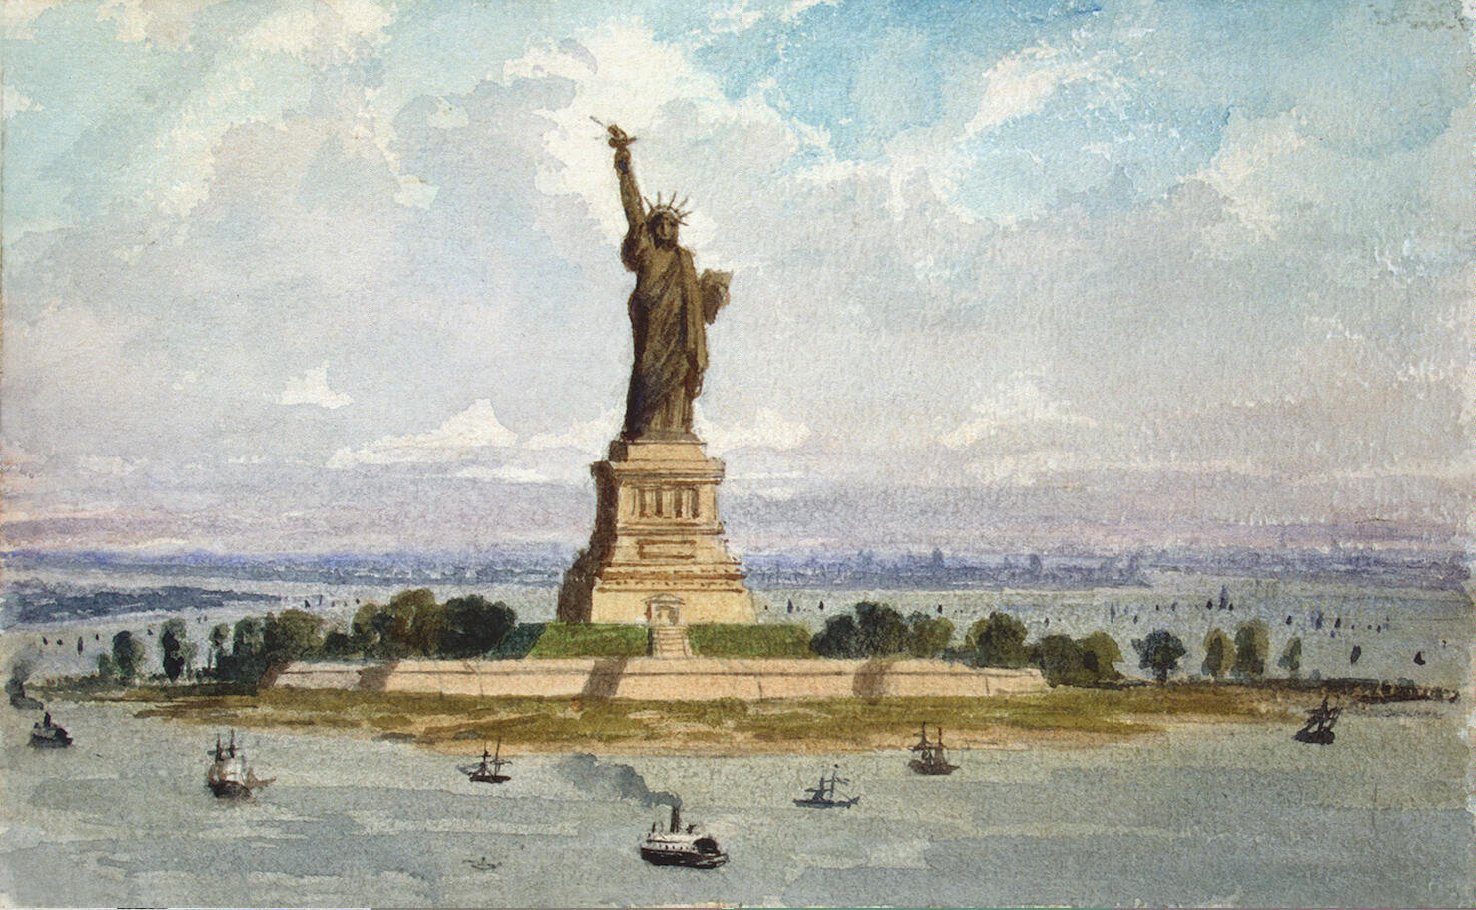 lighting the people of new york the statue of liberty New york, ny – october 28, 1886, dawned shrouded in fog and rain,  of  friendship to the people of the united states, an enormous statue of a  from  liberty island, surrounding the statue with brilliant color, light and sound.